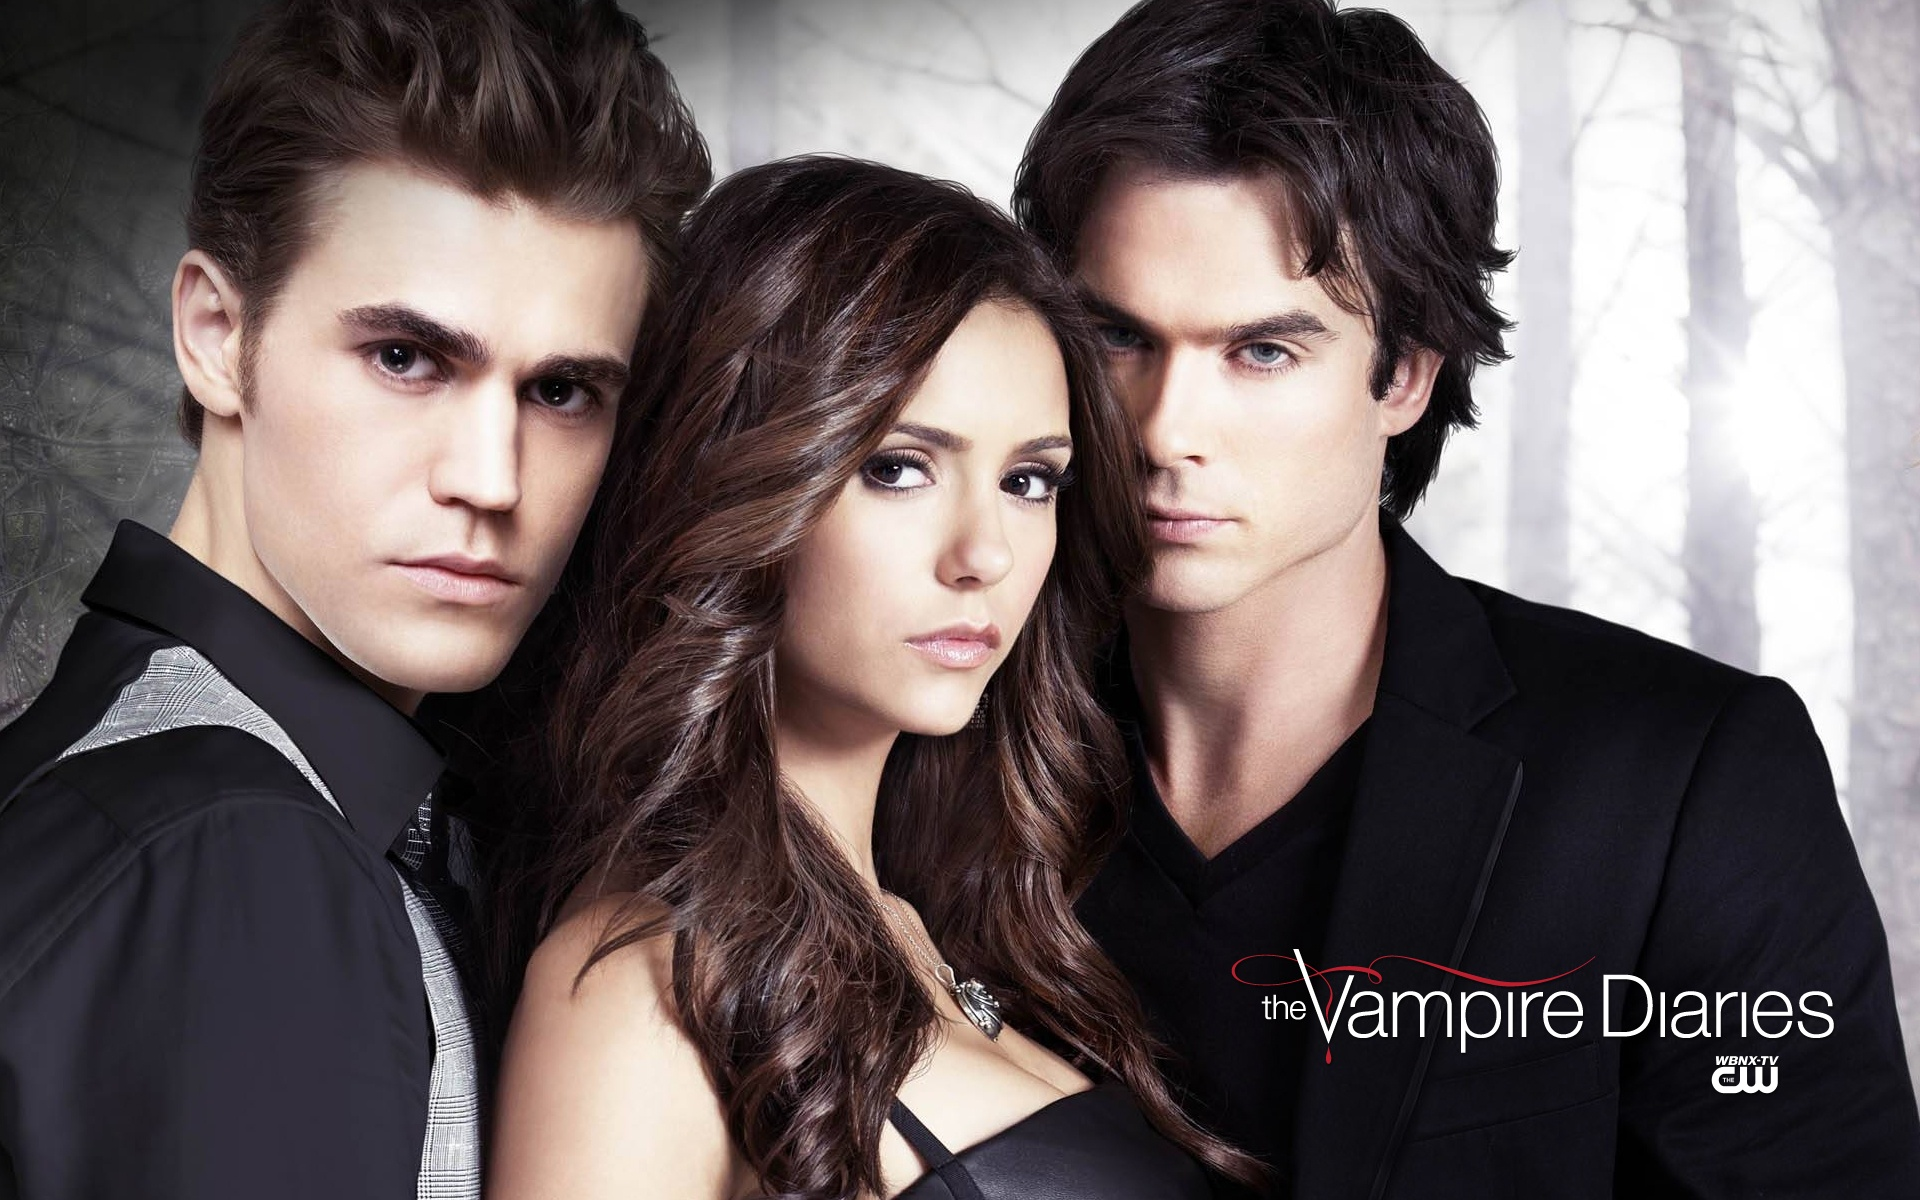 Wallpaper The Vampire Diaries Season 2 1920x1200 Hd Picture